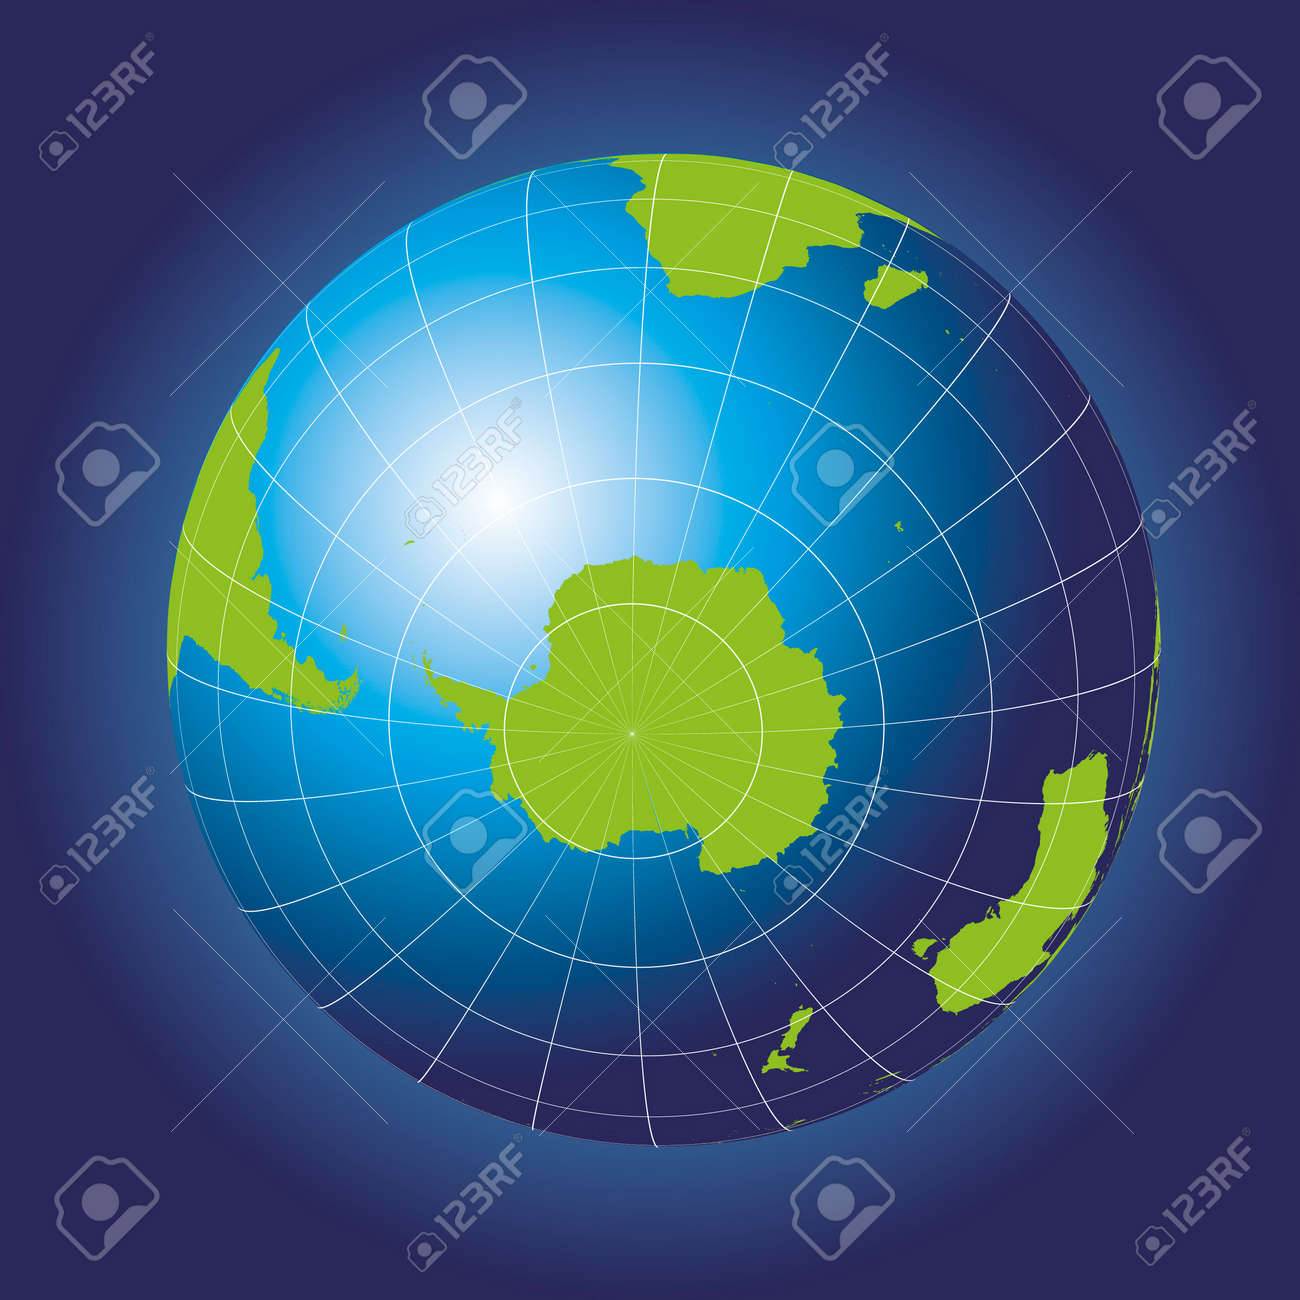 Antarctica and south pole map antarctica australia america antarctica and south pole map antarctica australia america africa earth globe gumiabroncs Image collections